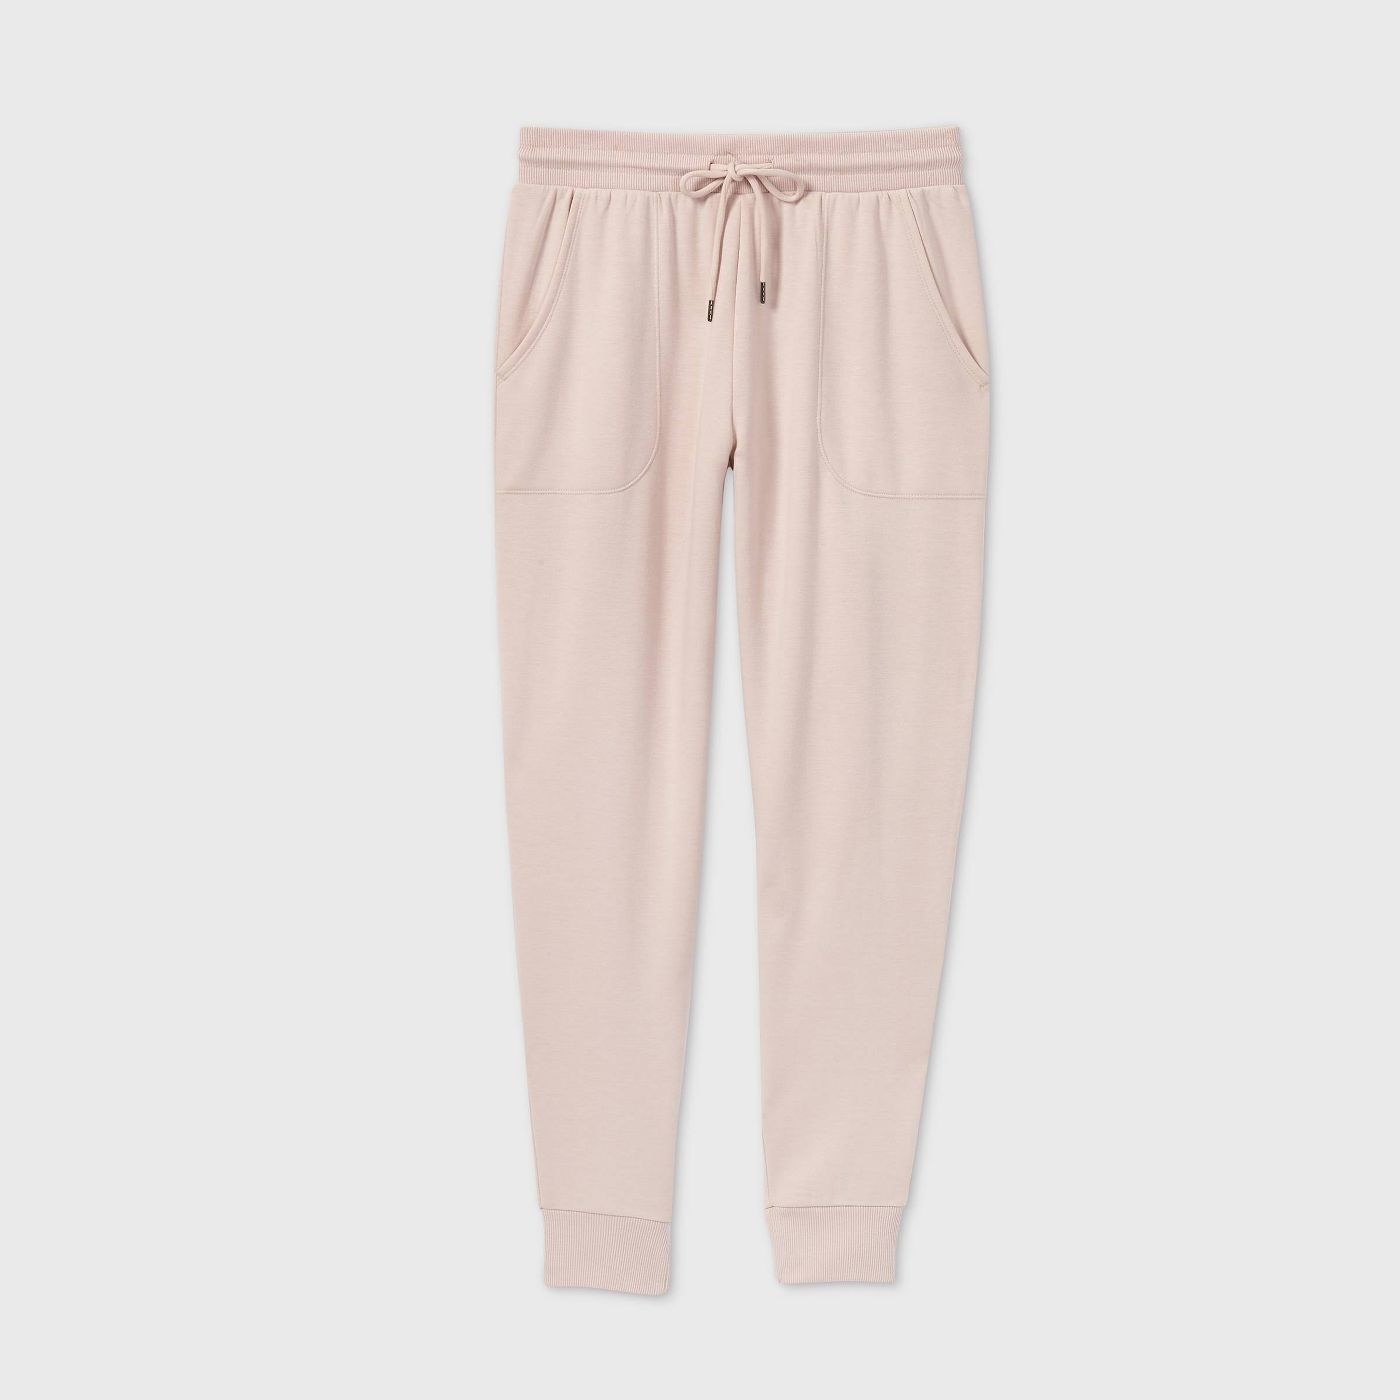 The joggers in light pink